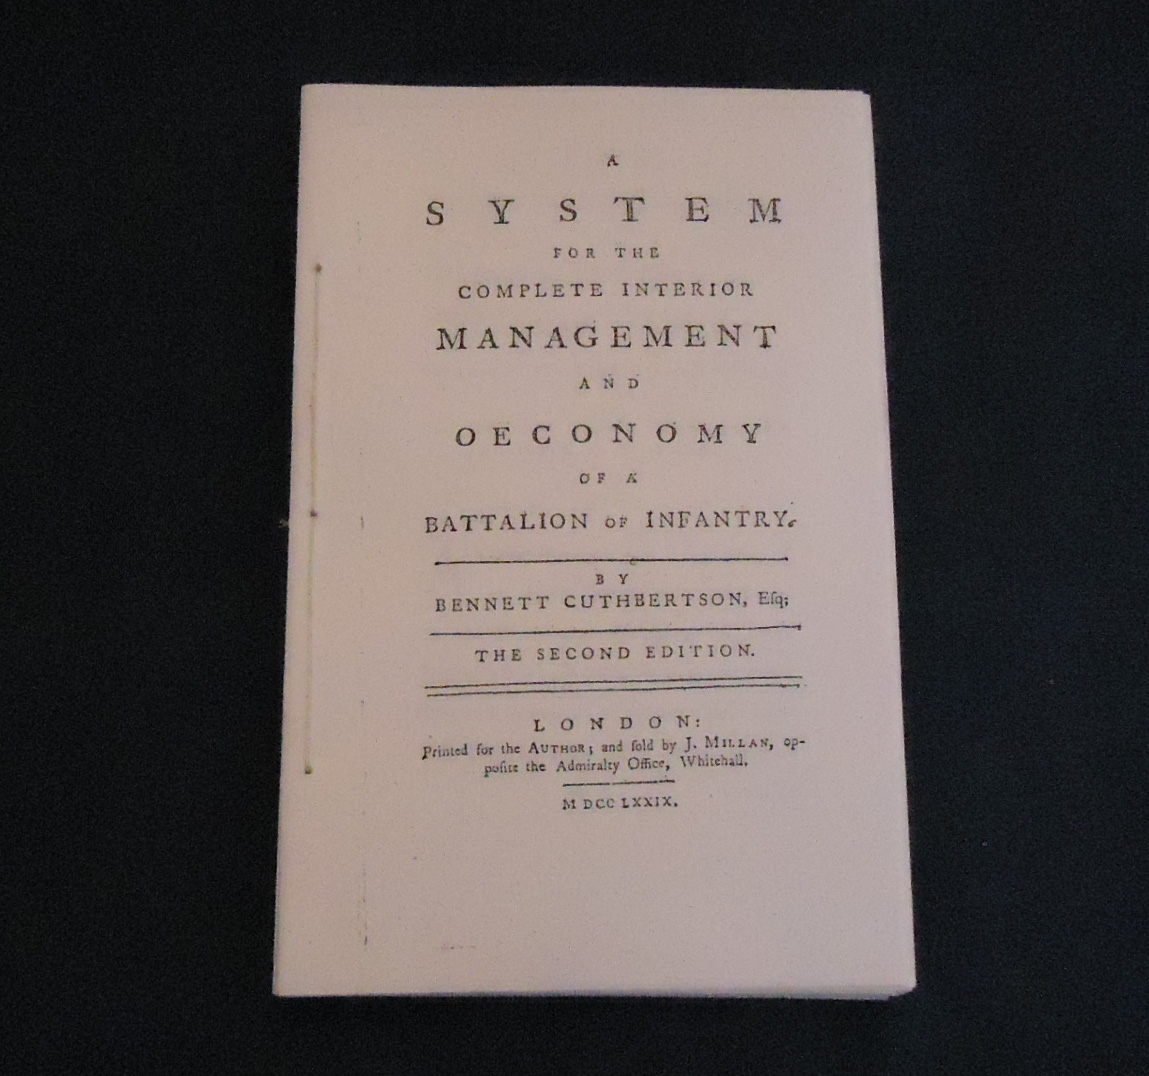 Cuthbertson's System of Management of Infantry